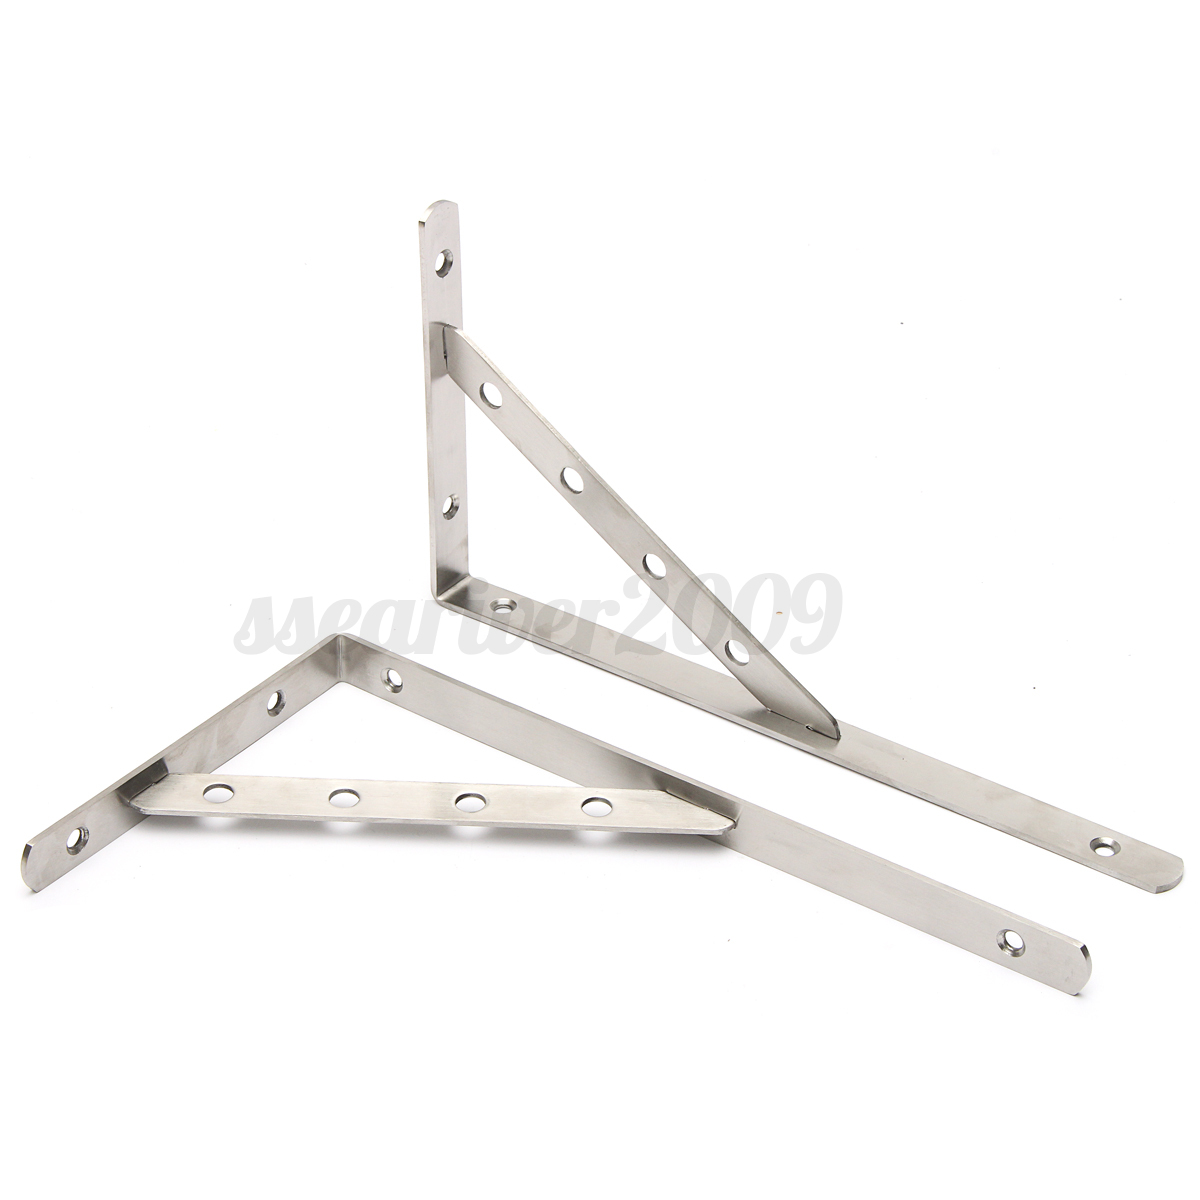 Angle Wall Shelf 1 Pair Stainless Steel Wall Shelf Brackets L Shaped Right